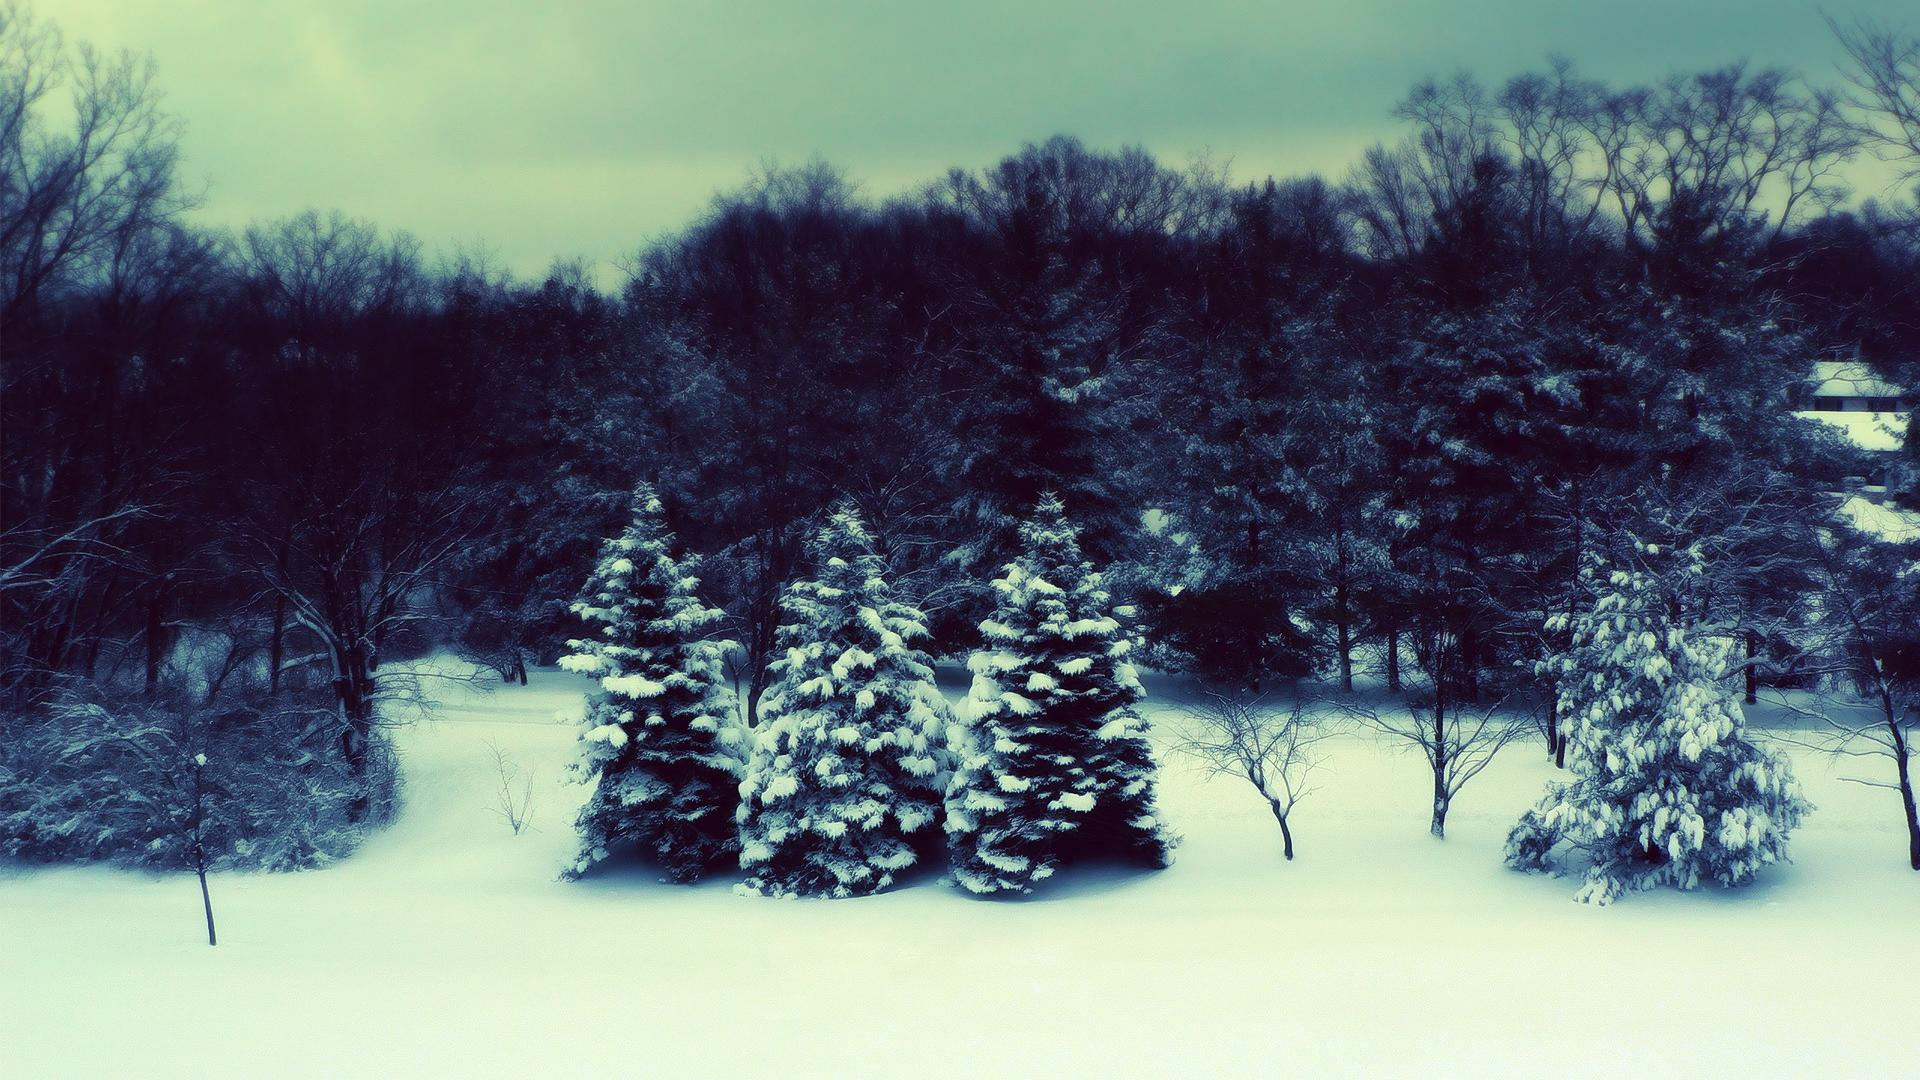 snow and winter desktop backgrounds wide wallpapers1280x8001440x900 1920x1080